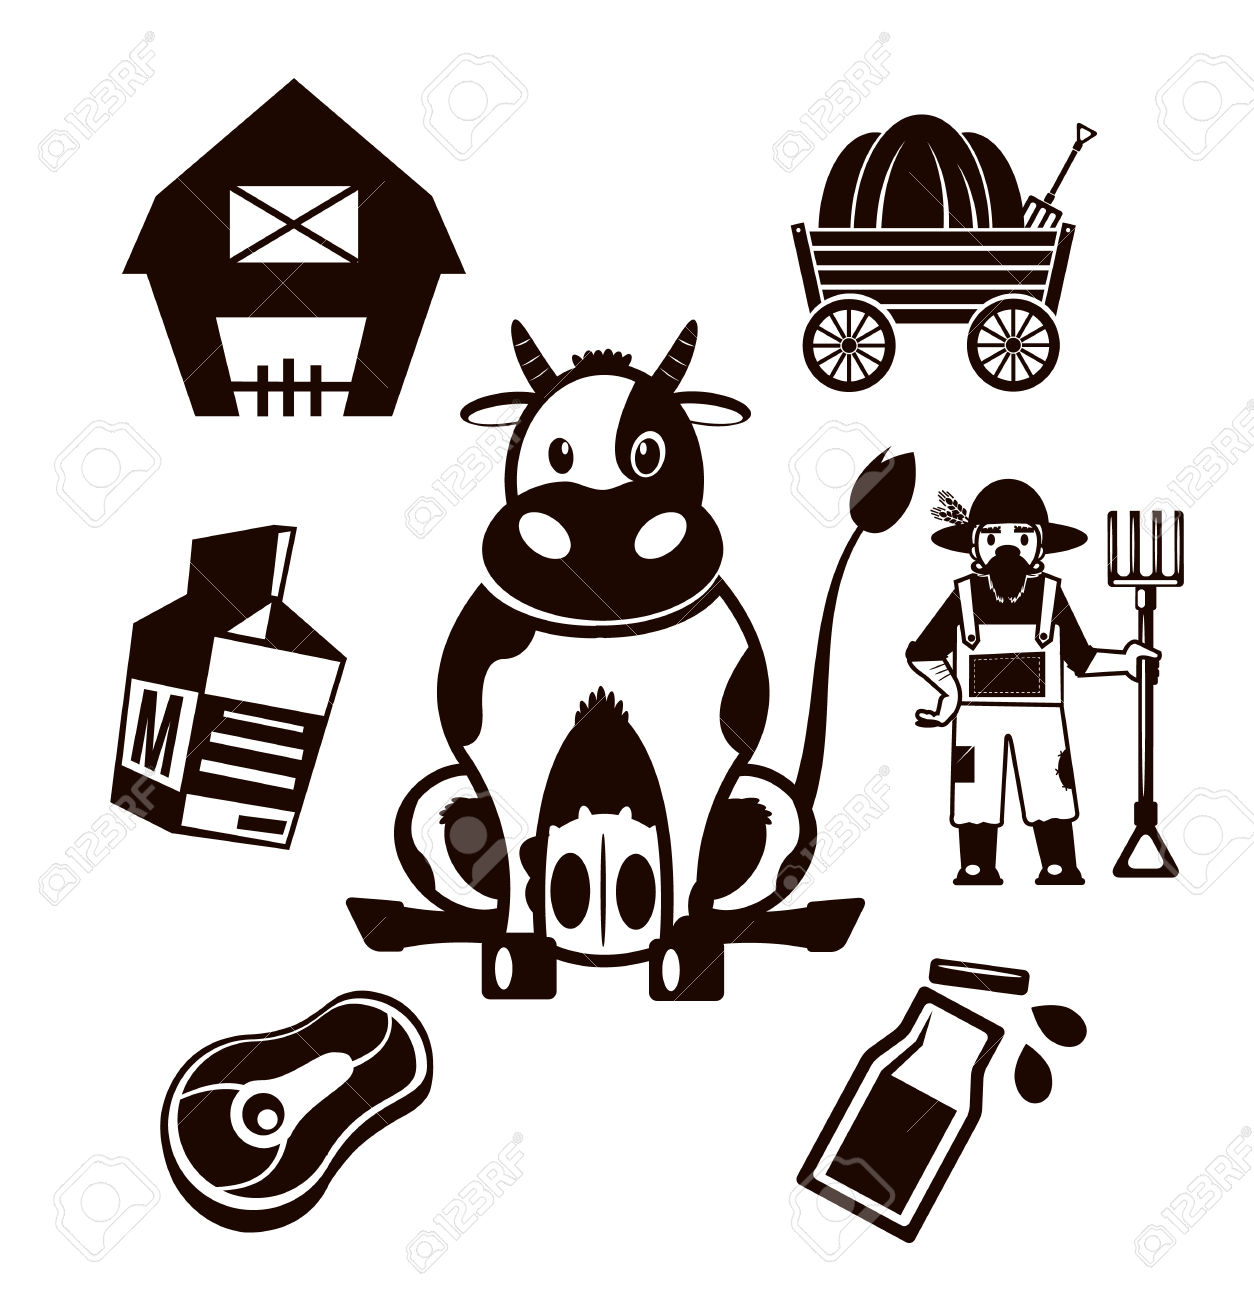 32902241-Stock-vector-farm-cow-pictogram-black-icon-set-Stock-Vector.jpg